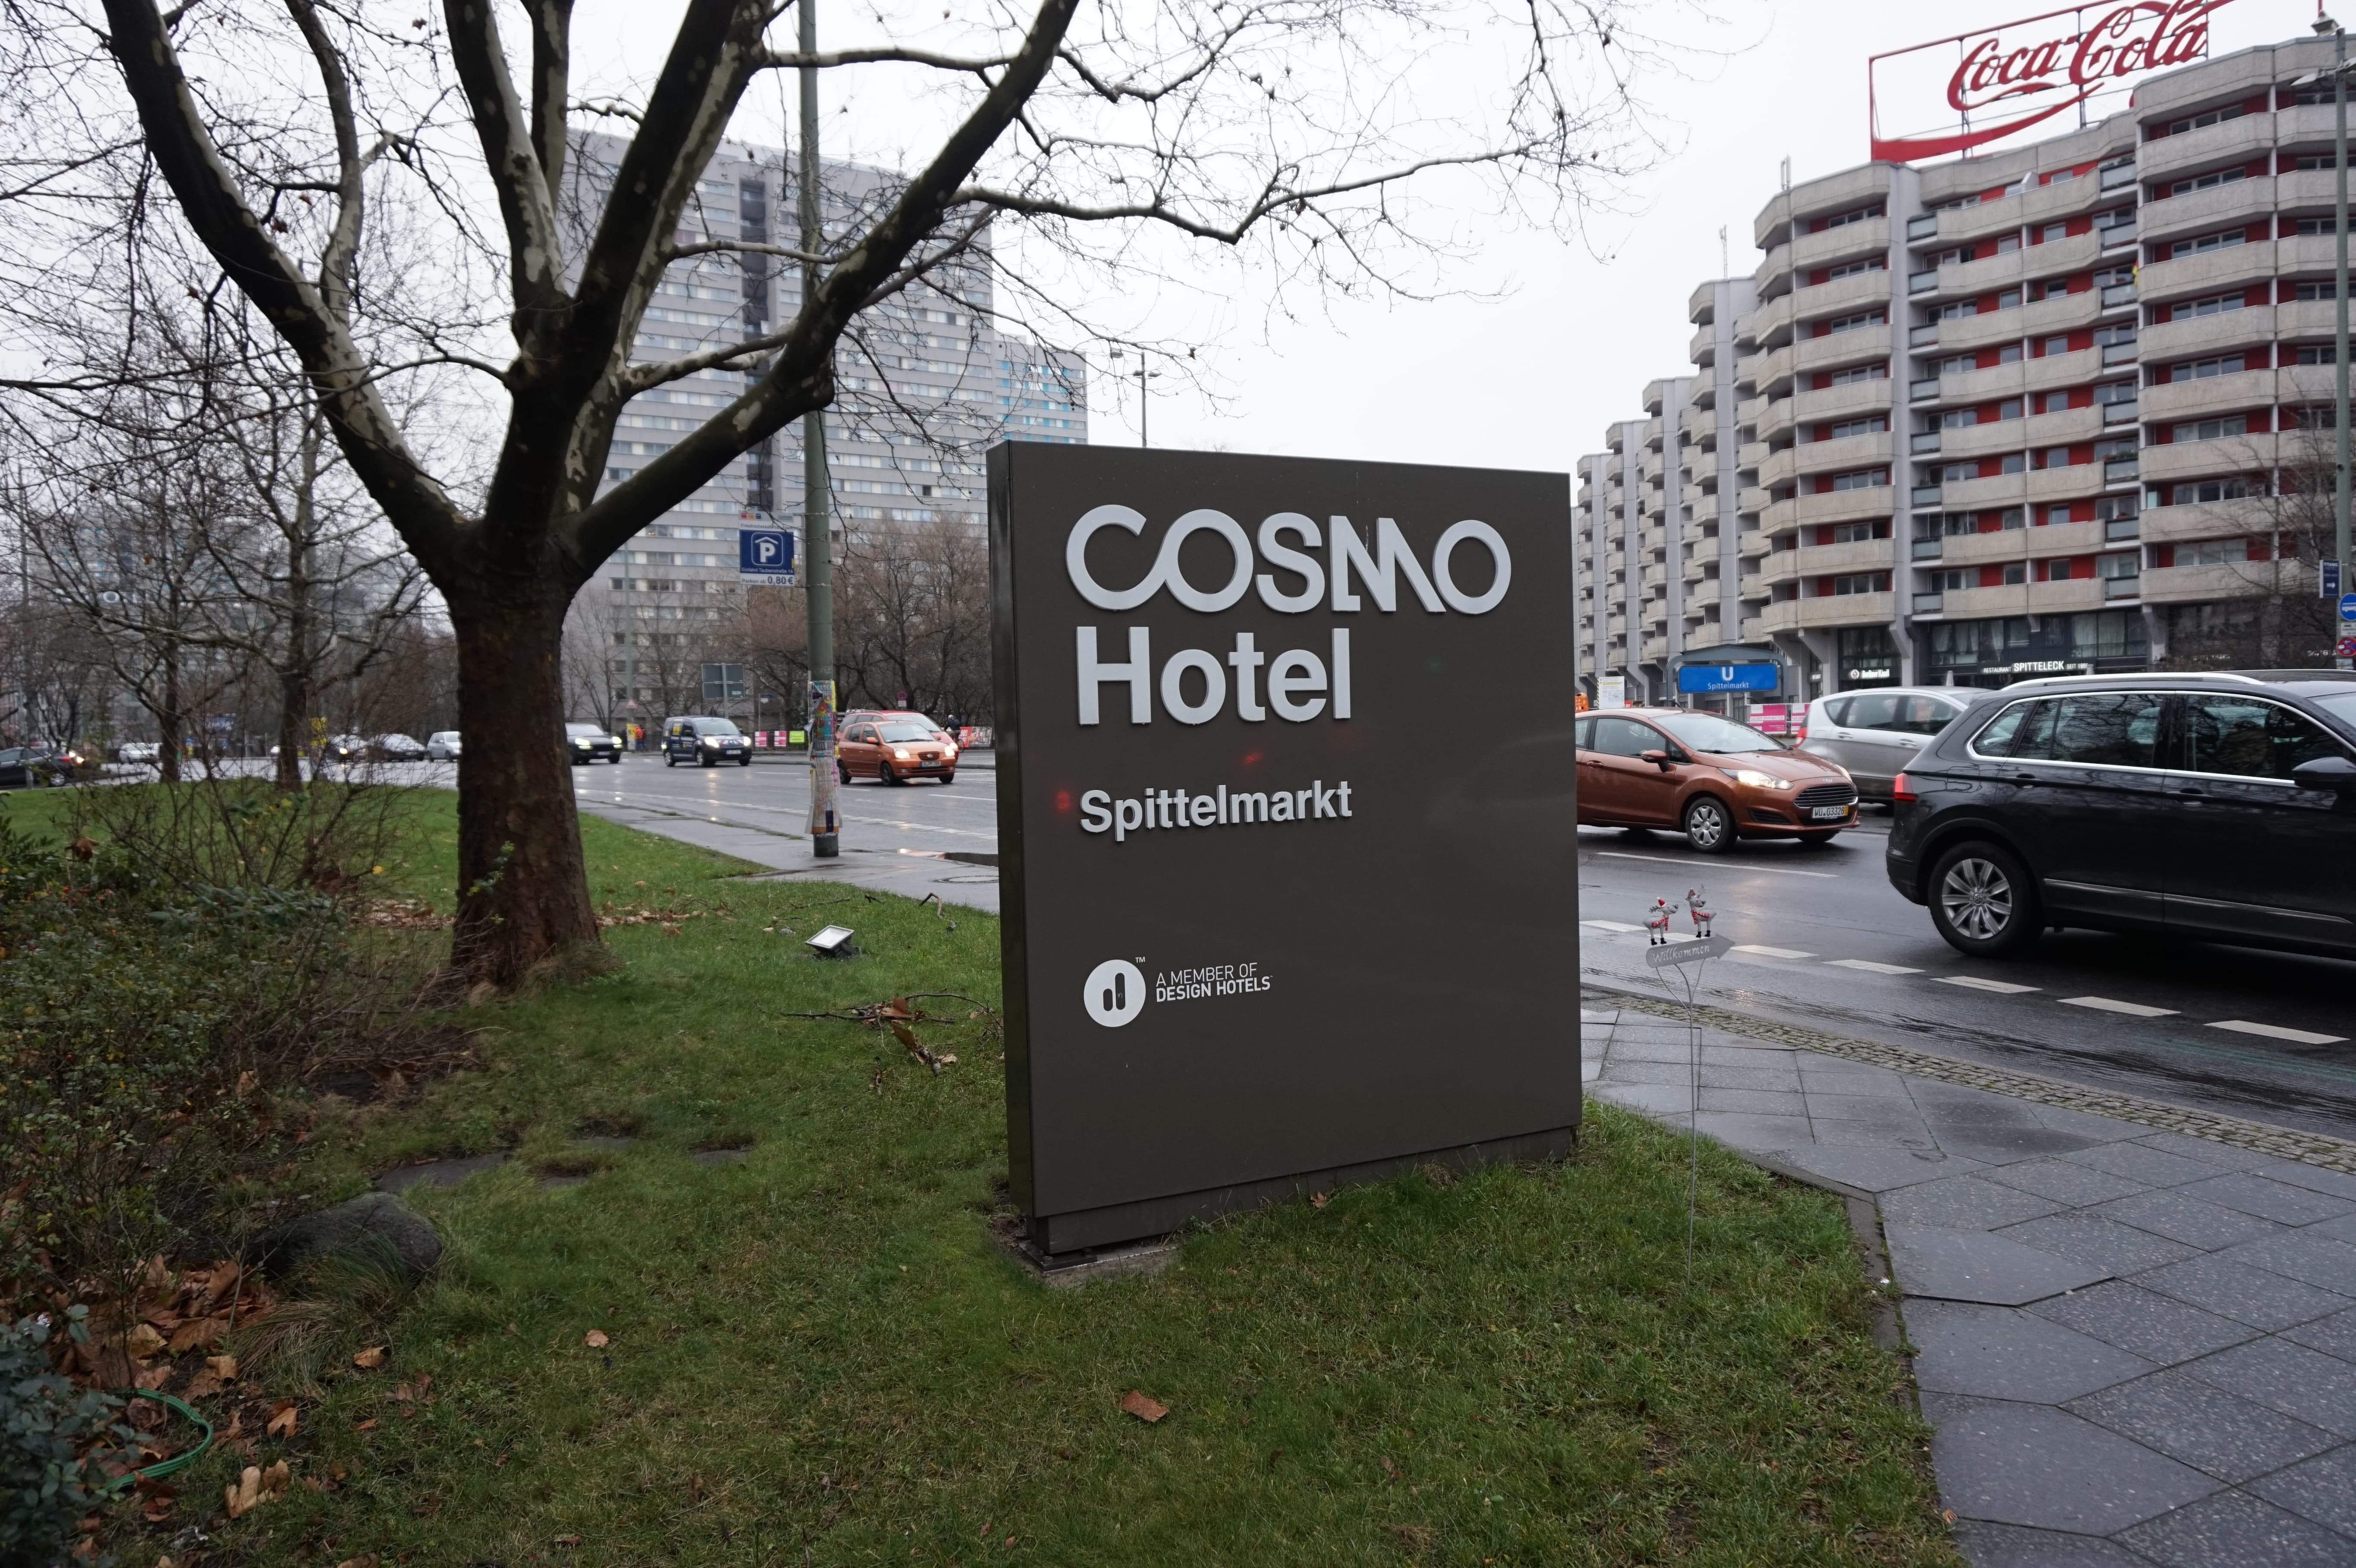 Cosmo Berlin The Milelion S Rtw Trip 2018 Cosmo Hotel Berlin Review The Milelion